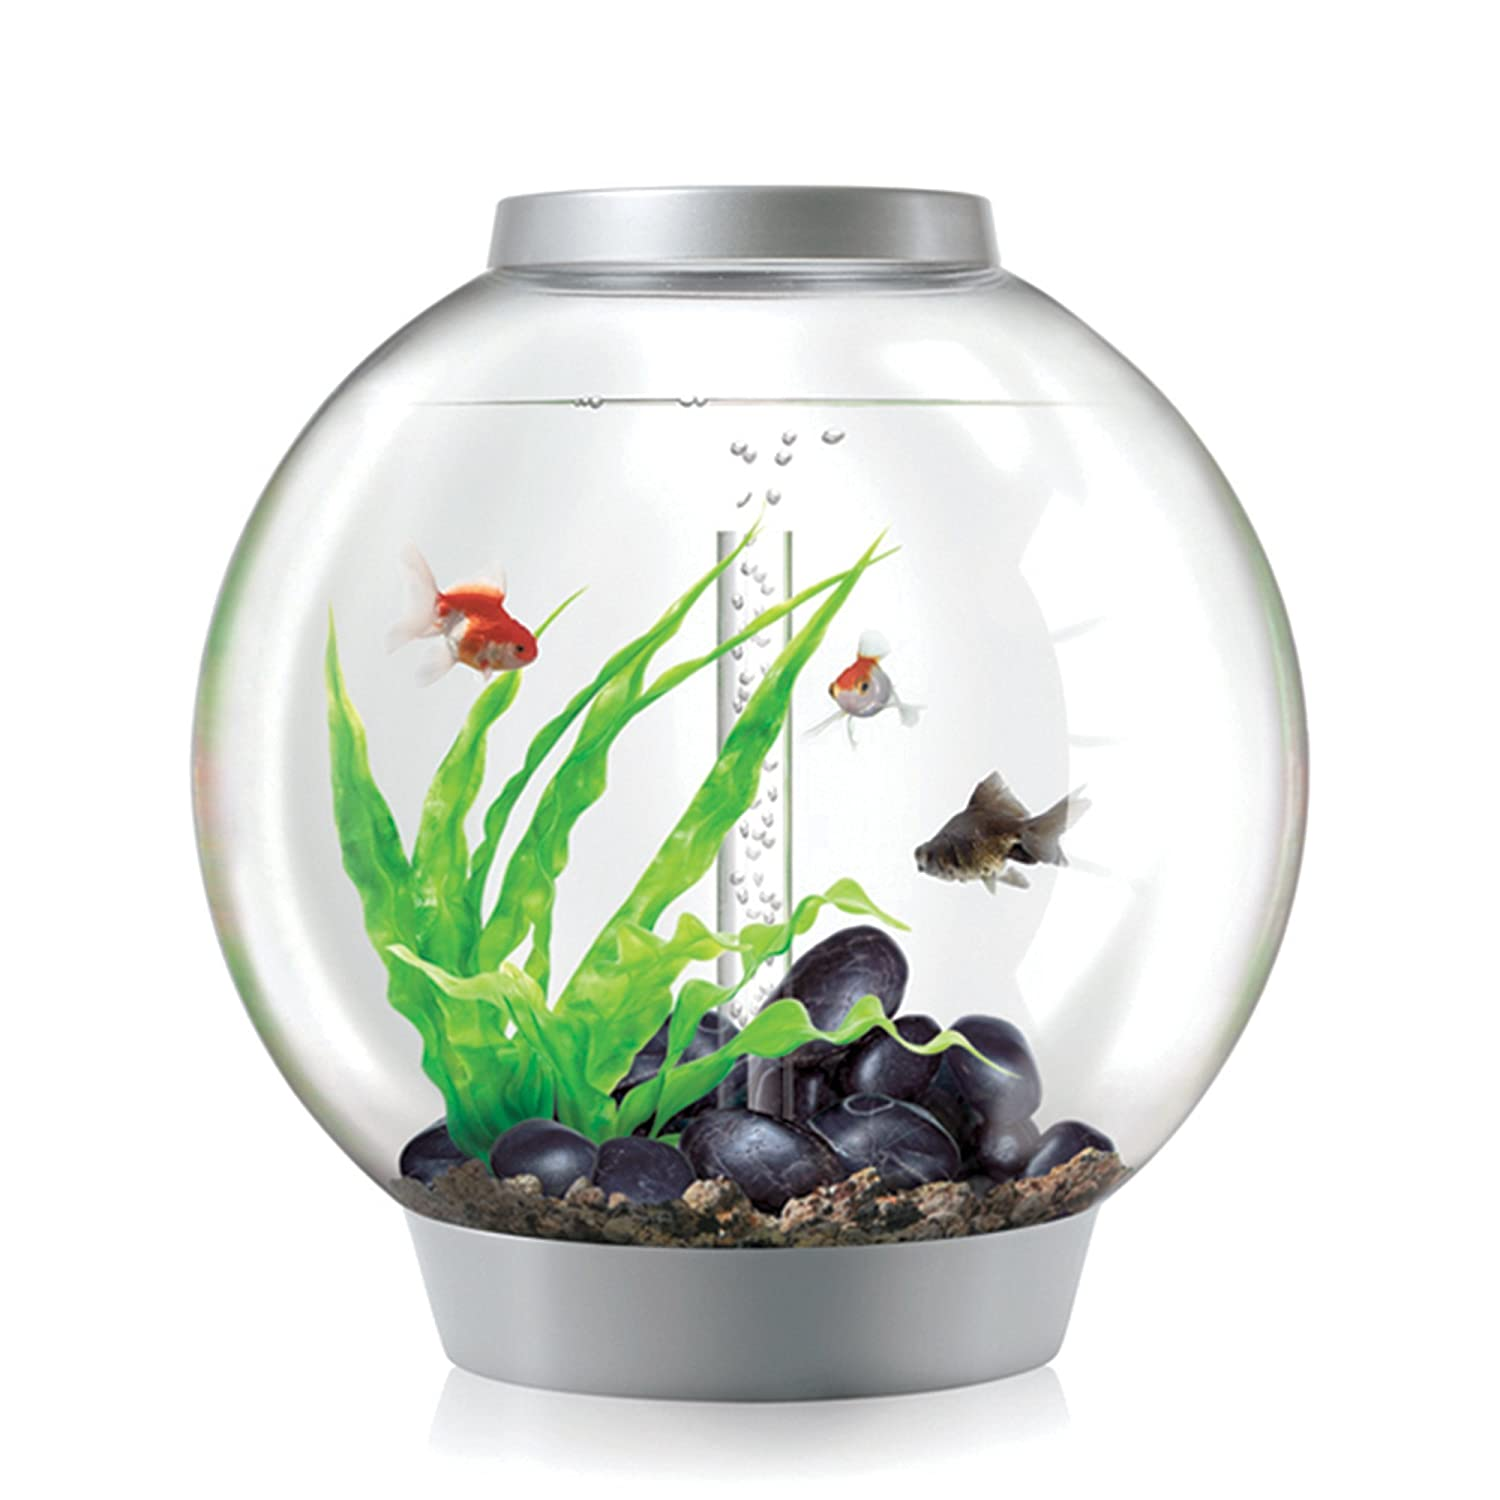 Amazon.com : biOrb CLASSIC 30 Aquarium with LED Light - 8 Gallon ...